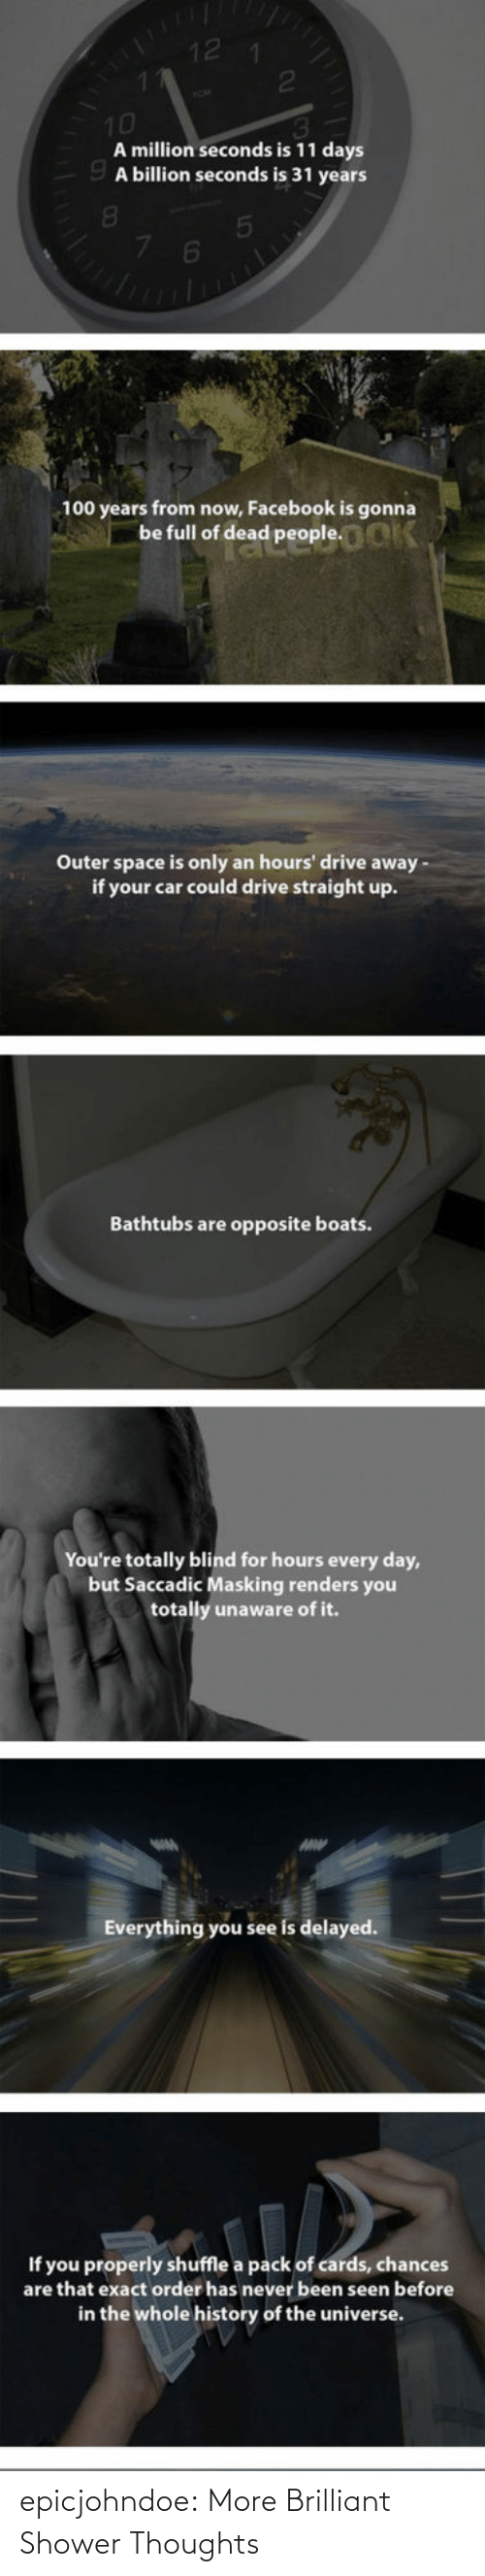 Brilliant: epicjohndoe:  More Brilliant Shower Thoughts